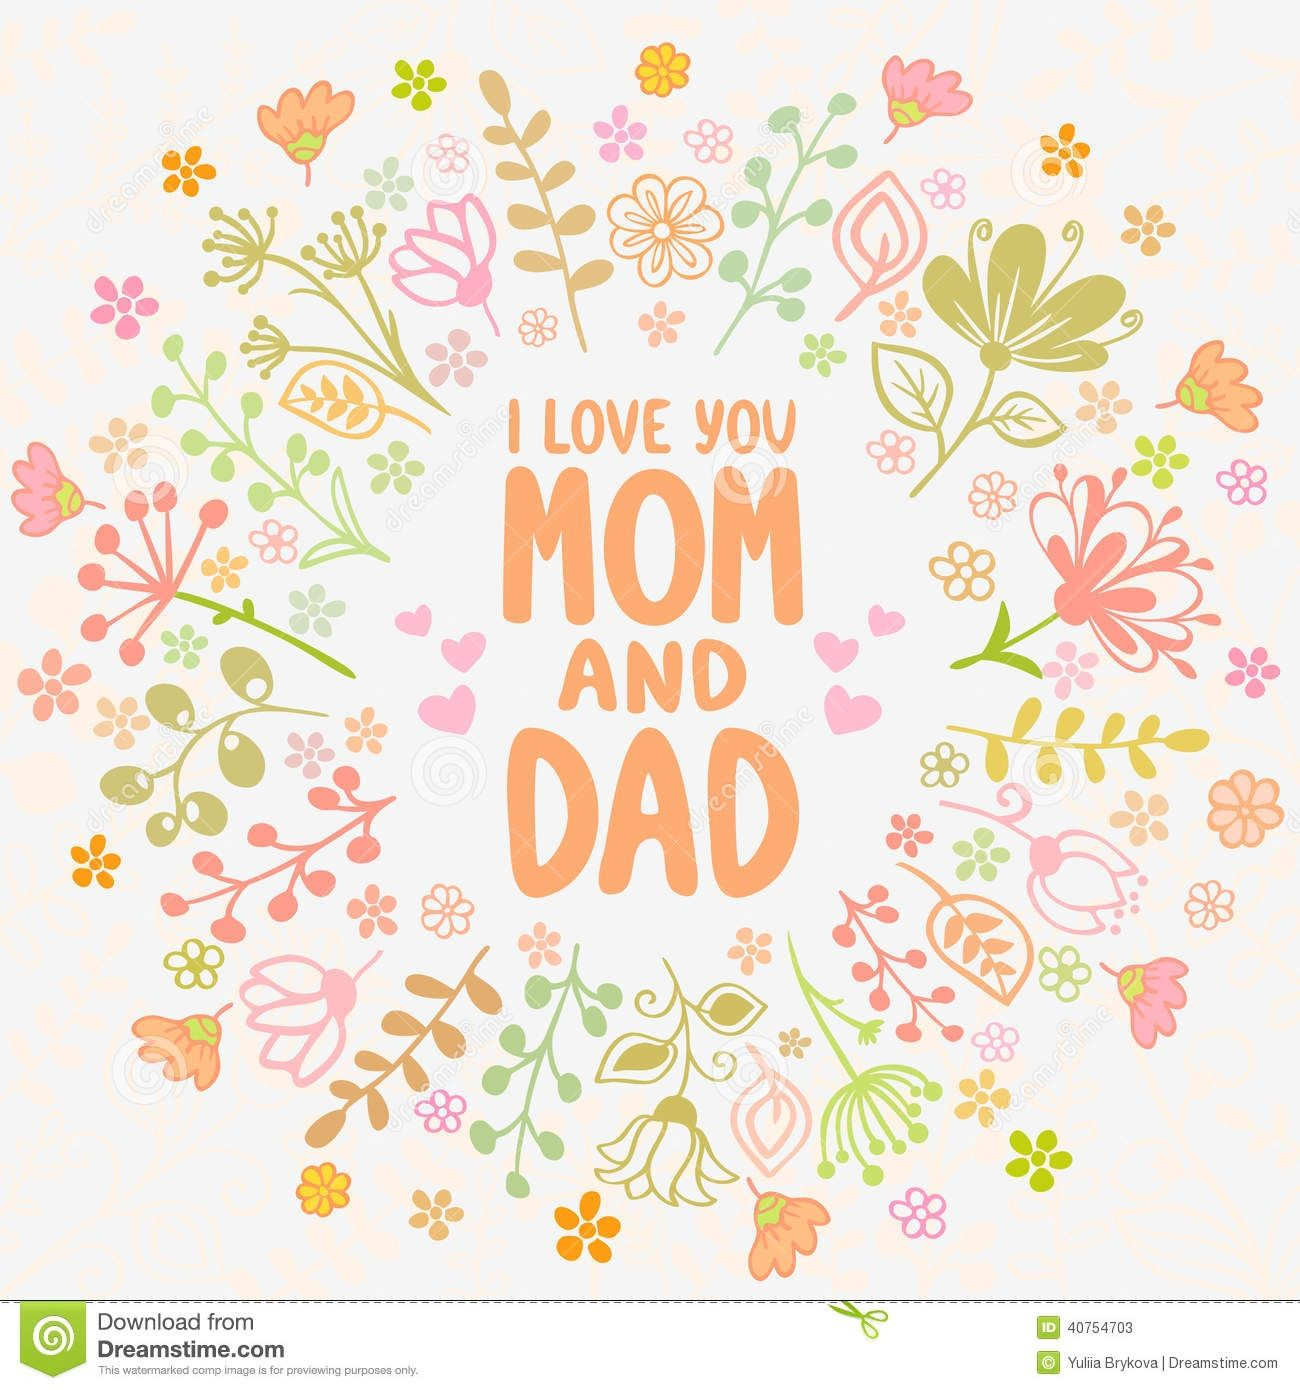 Mom clipart miss you. Free images of love